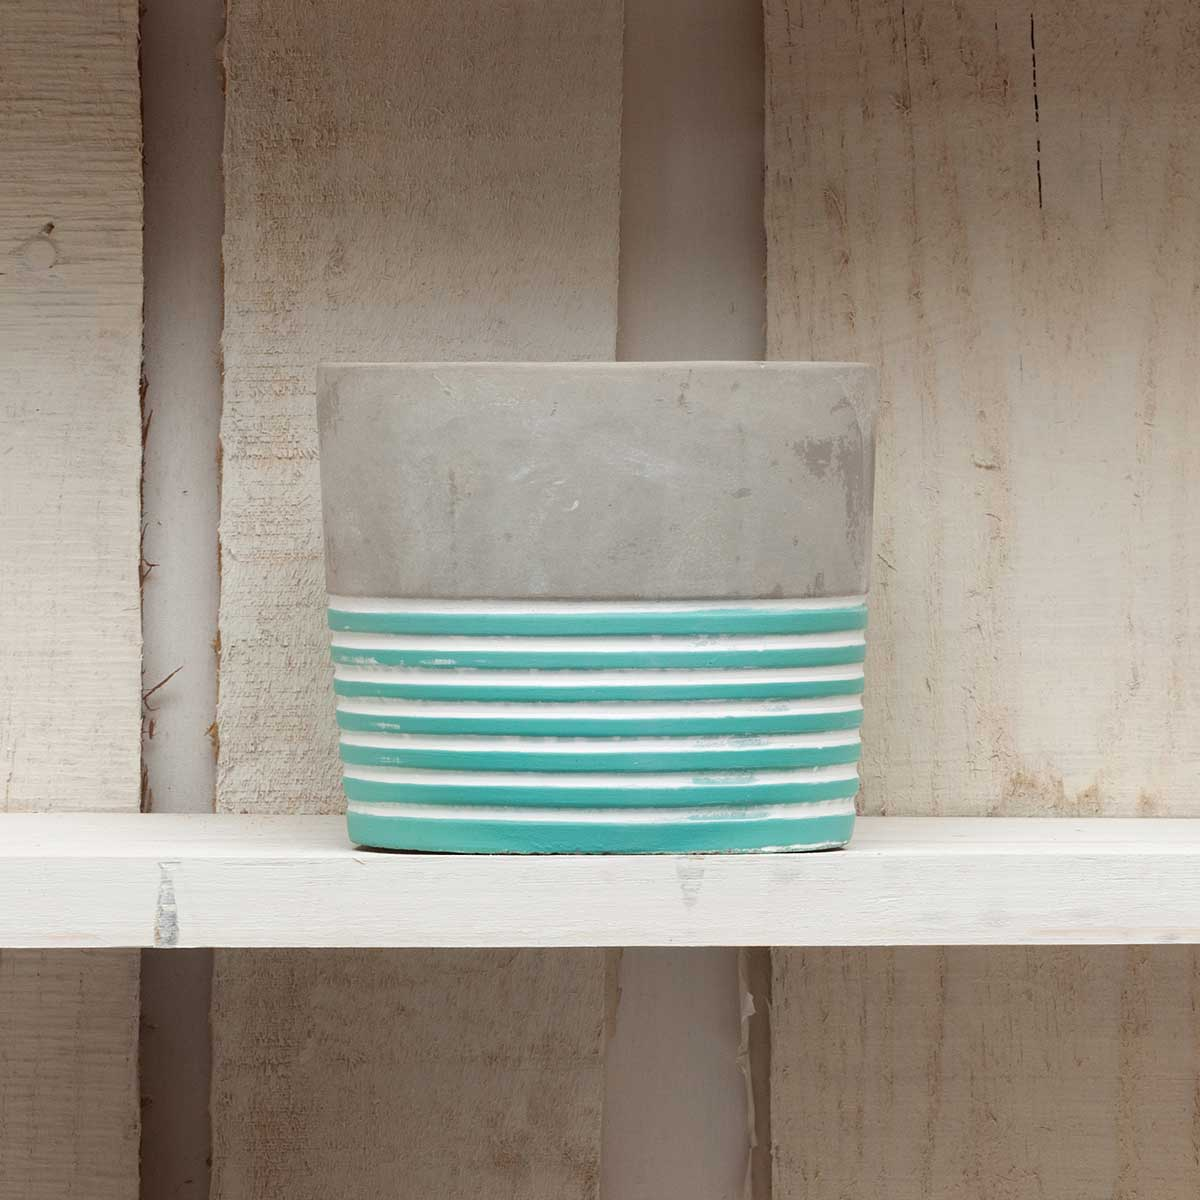 "STRIPE ROUND POT 4"" TEAL"